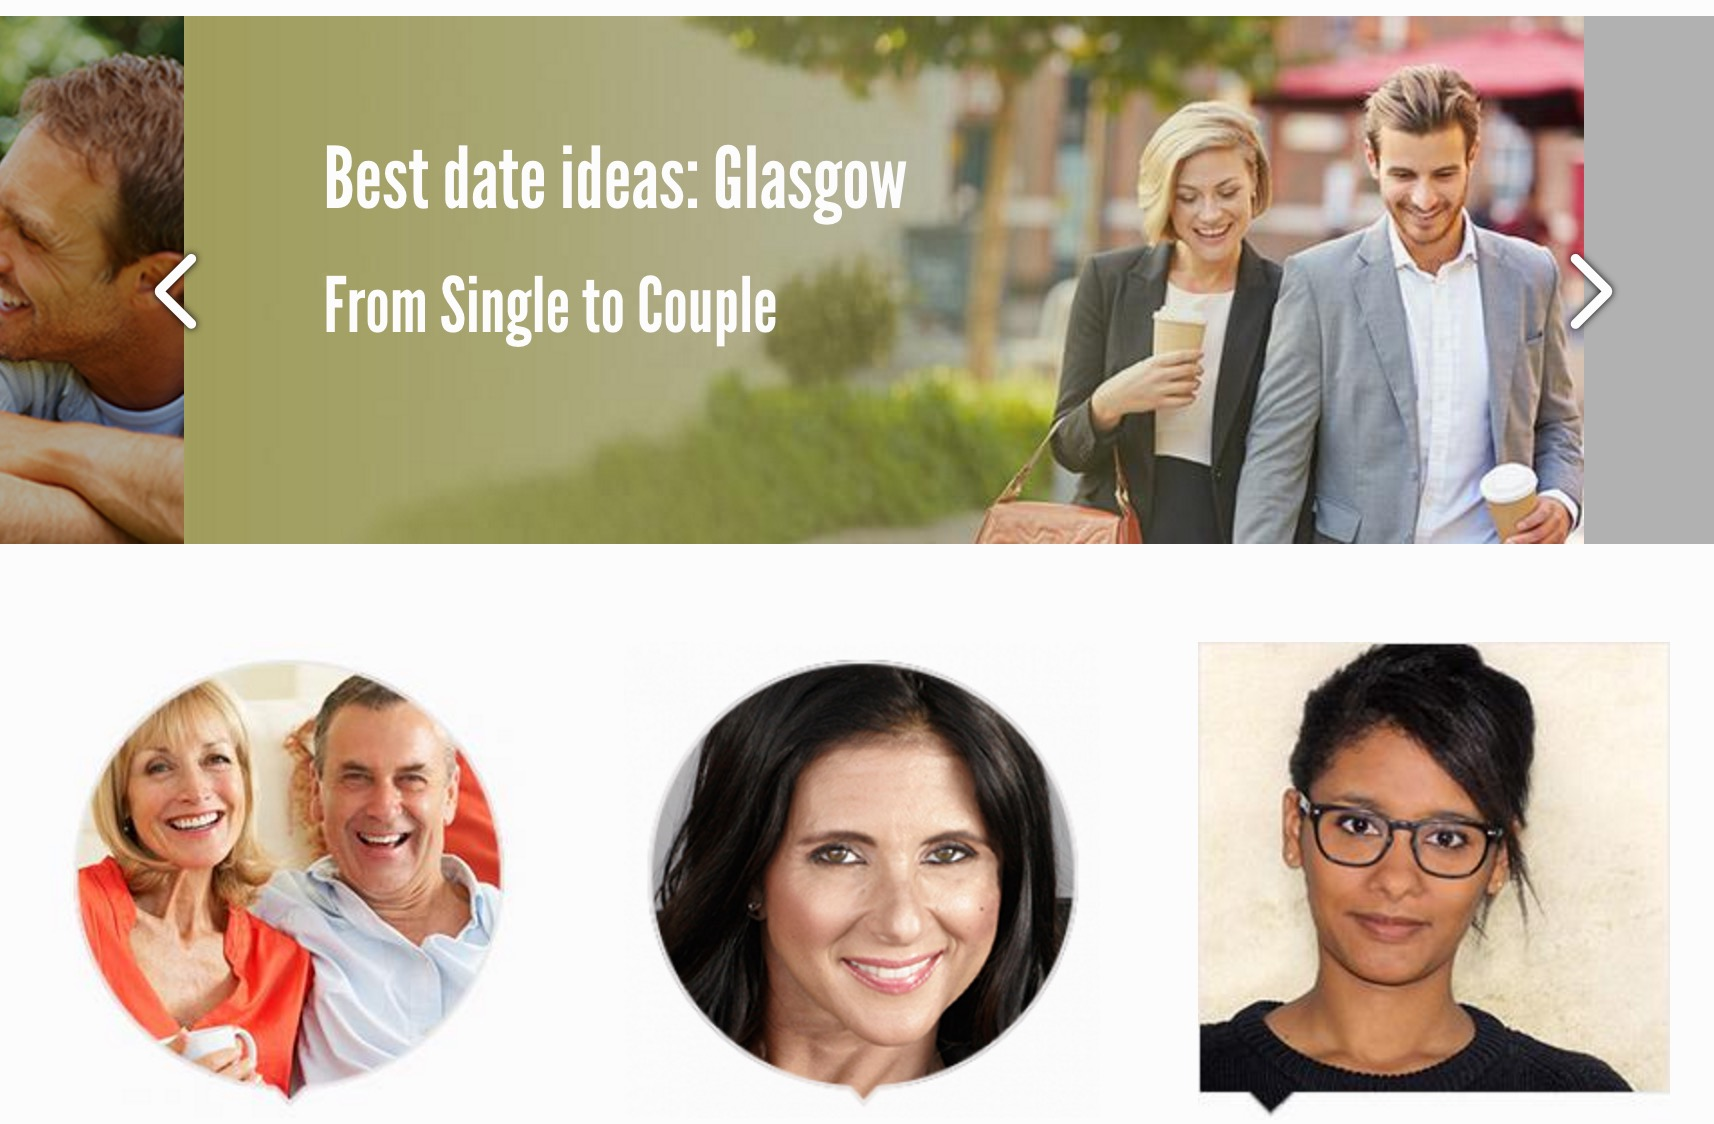 Matchmaking services glasgow